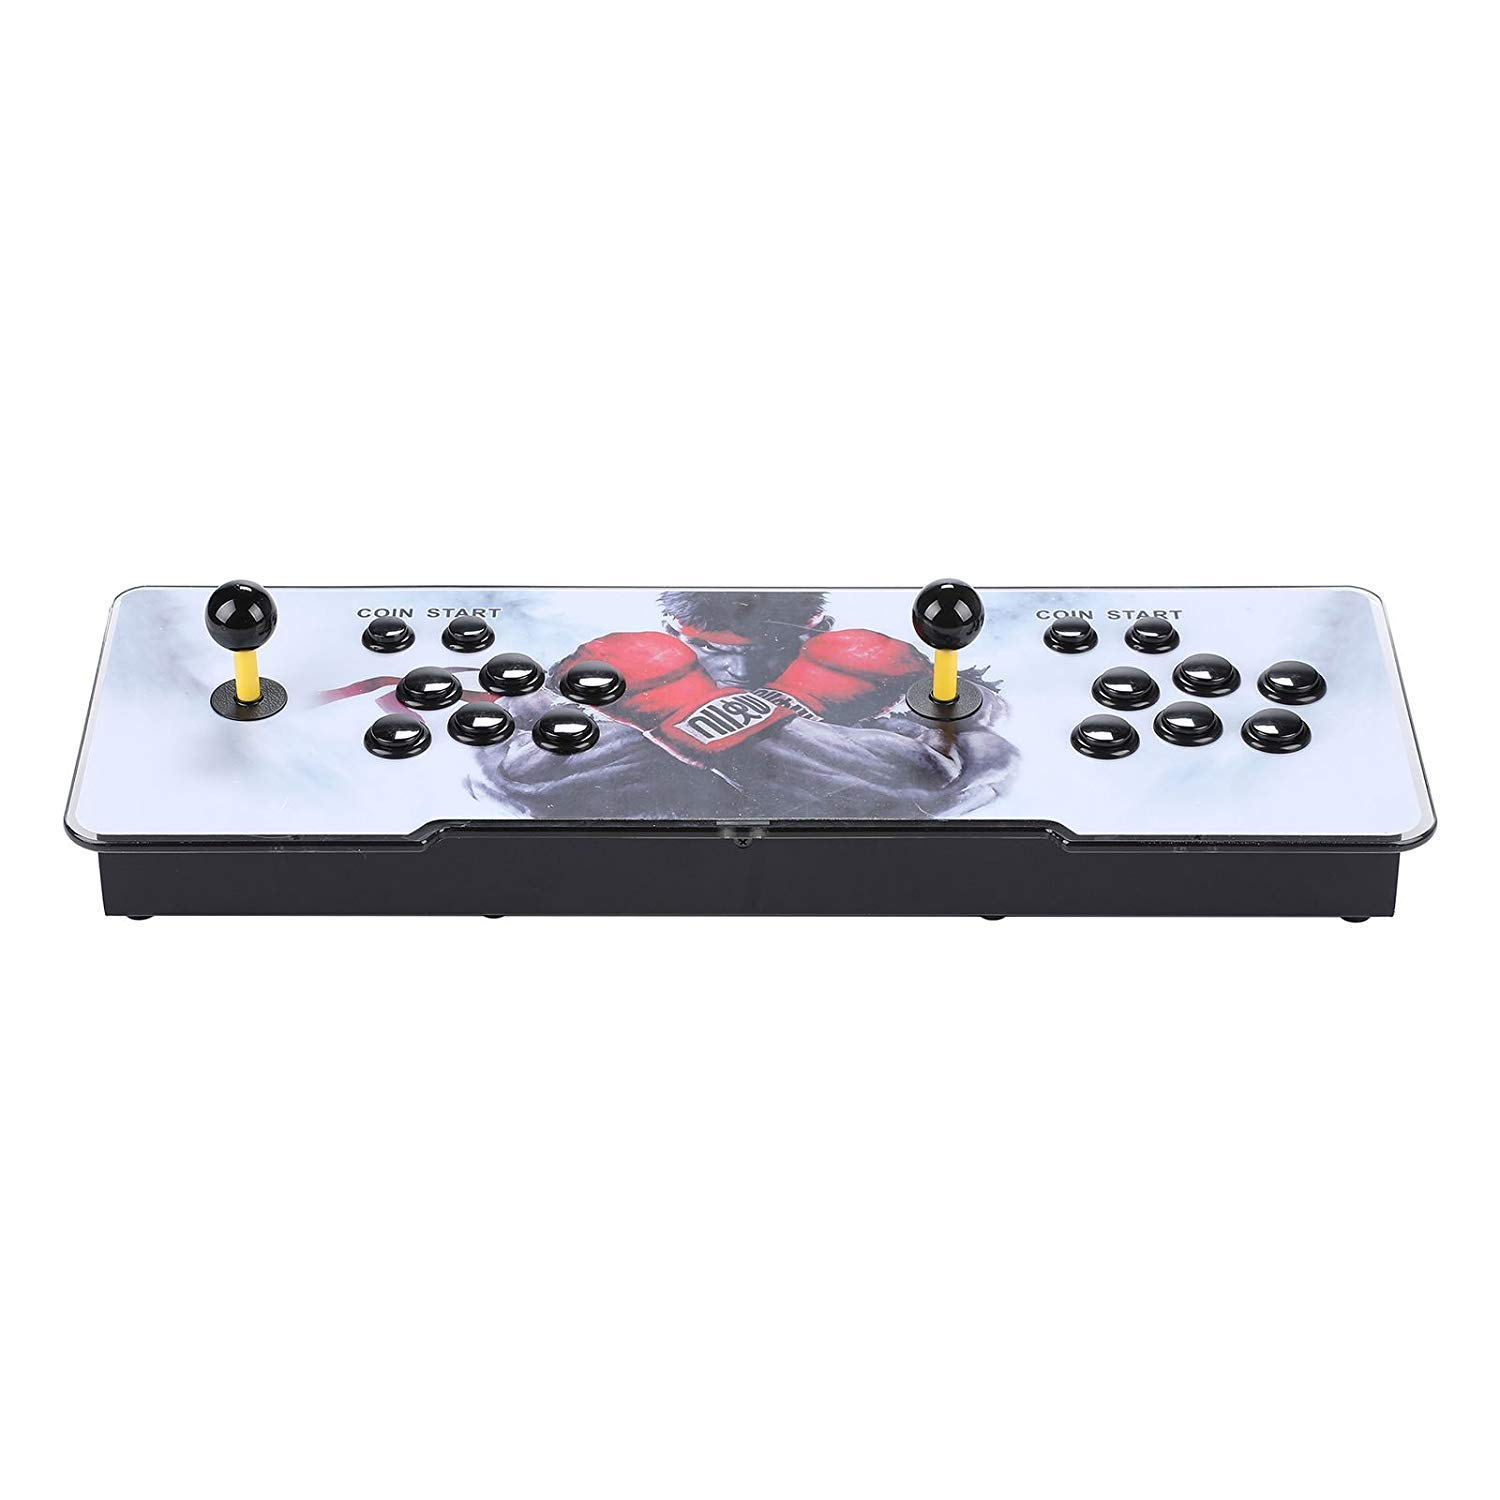 Happybuy Real Pandora's Box 6 Arcade Game Console HD Retro 3D Pandora's Key 7 Arcade Video Game 1500 in 1 Arcade Console with Arcade Joystick Support Expand Games for PC / Laptop / TV / PS4 by Happybuy (Image #7)